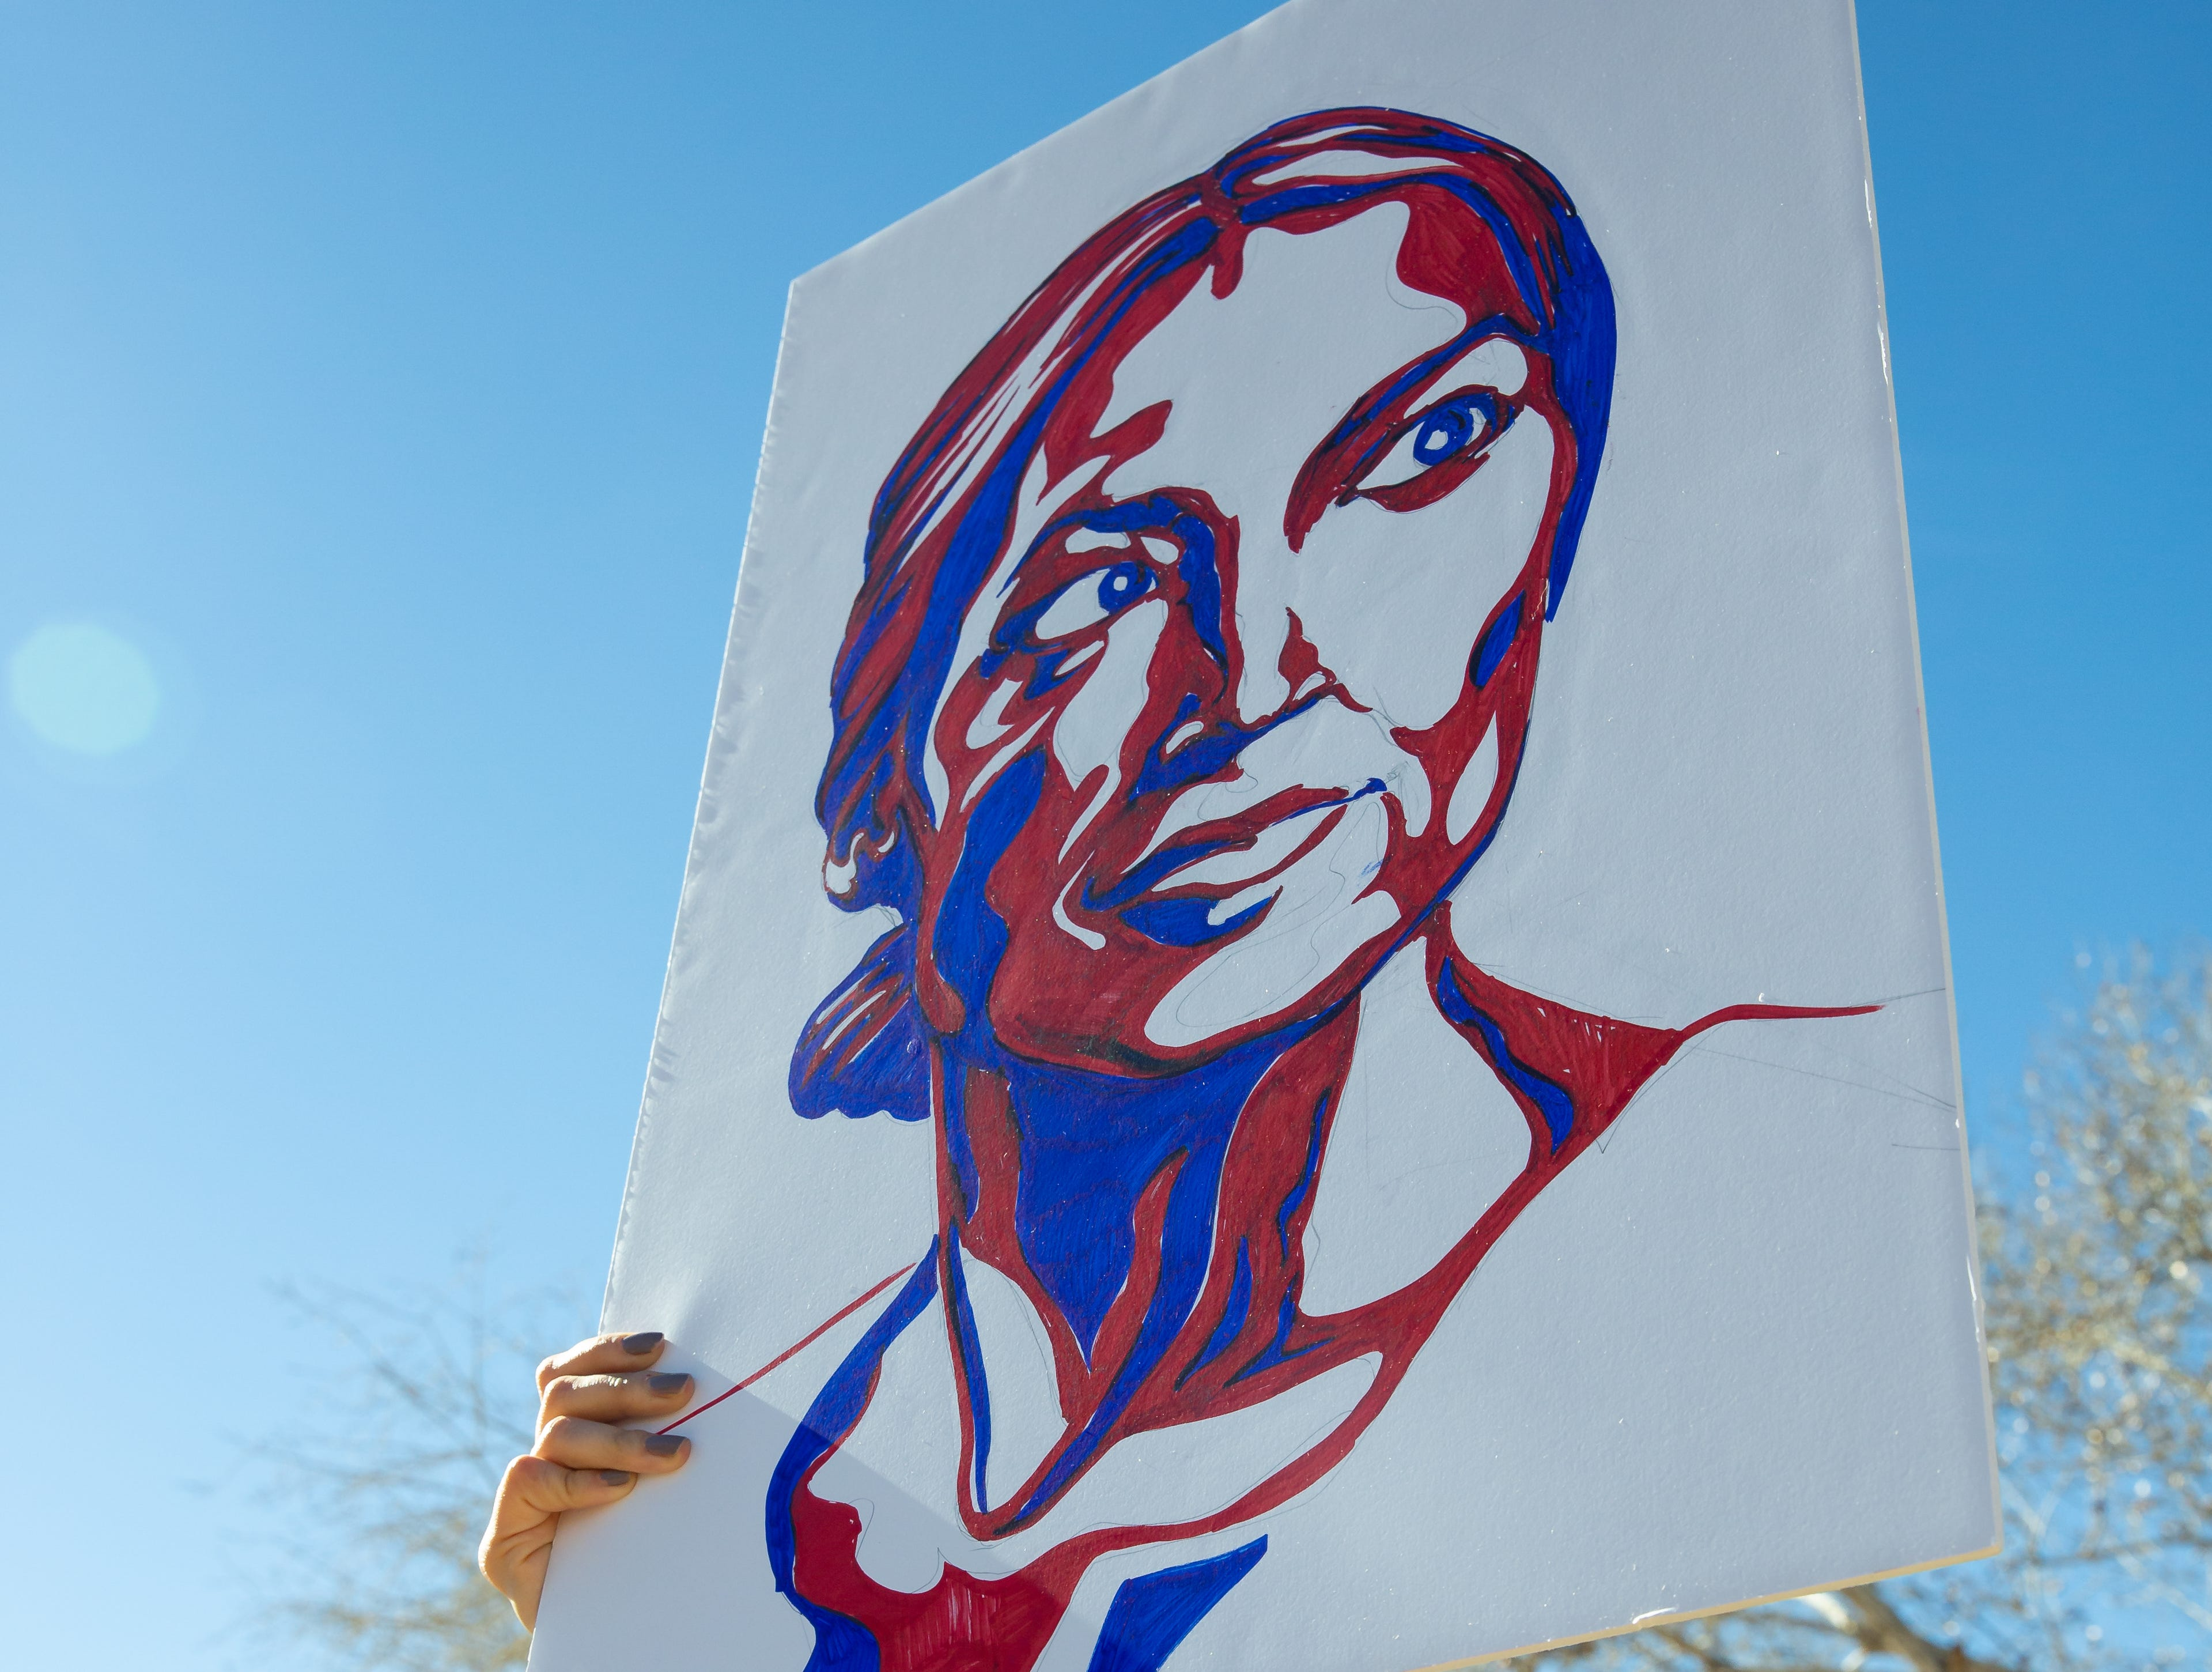 Raquel Madrigal hold a sign painted by Henry Hartig of Rep. Alexandria Ocasio-Cortez's, D-N.Y. on Saturday, January 19, 2019 at Albert Johnson Park during the 2019 Las Cruces Woman's Rally.